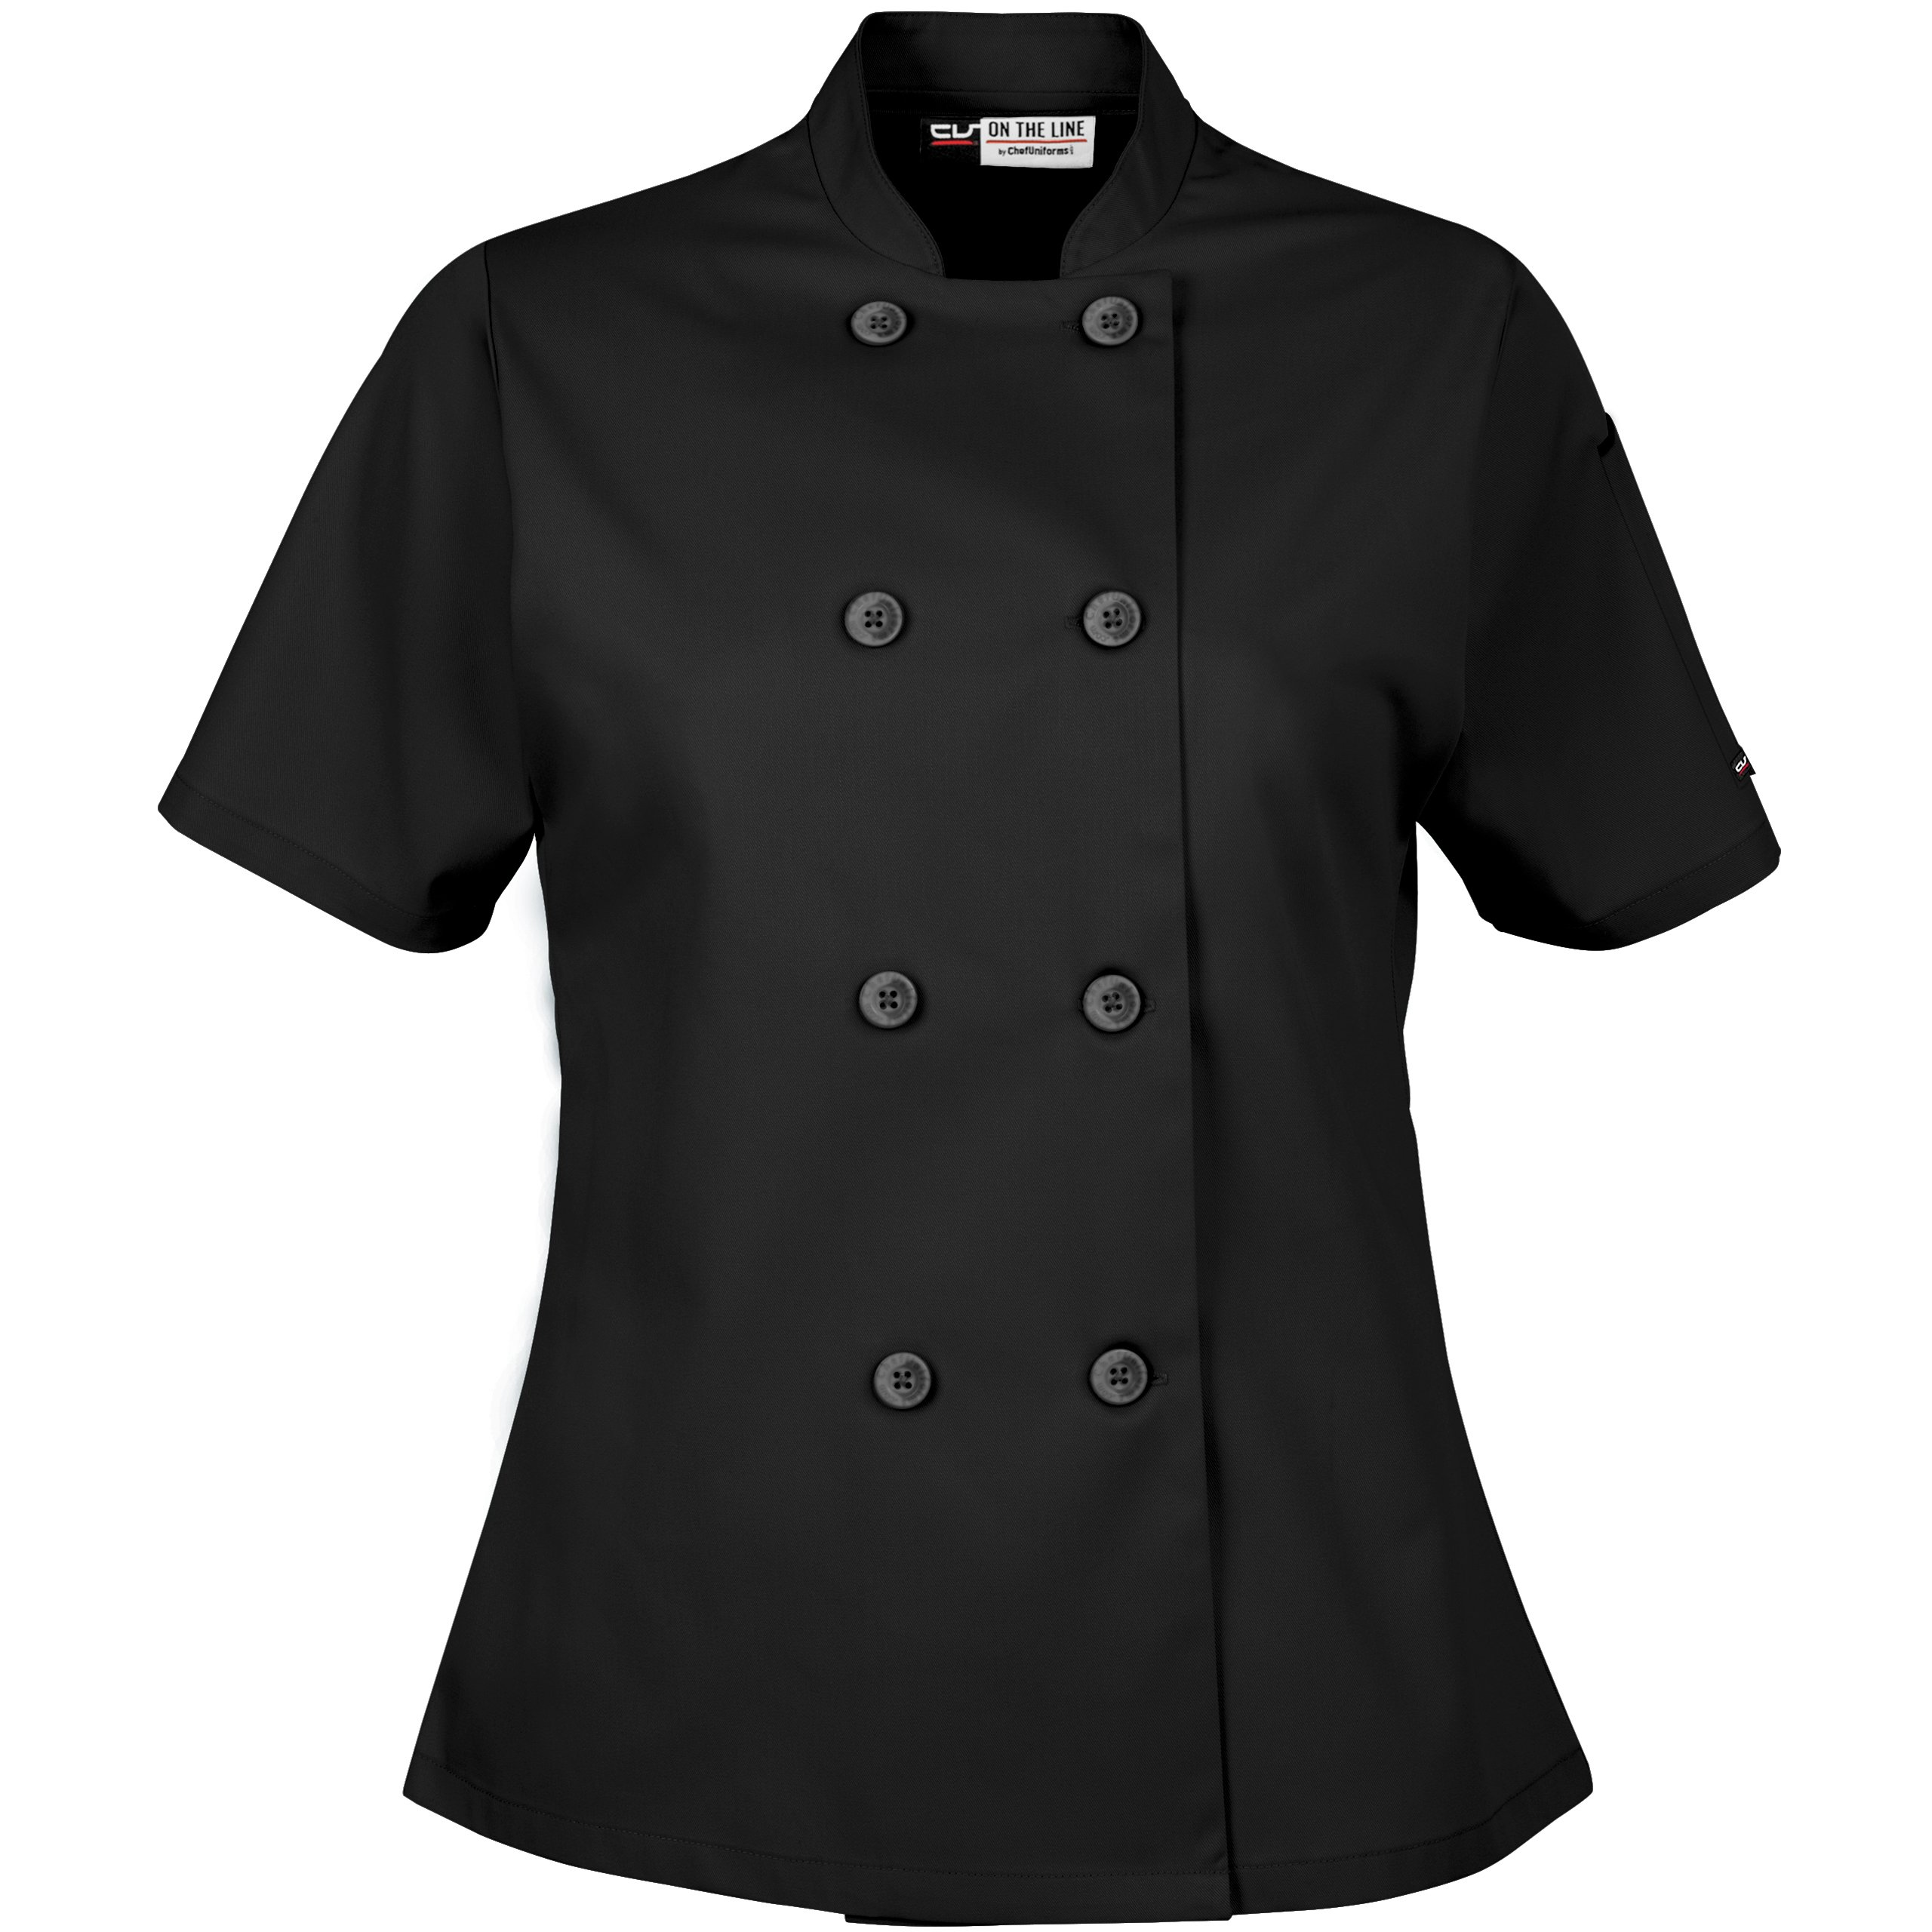 On The Line Women's Short Sleeve Chef Coat/Double Breasted/Plastic Button Reversible Front Closure (S-2X, 2 Colors) (Small, Black) by On The Line (Image #2)